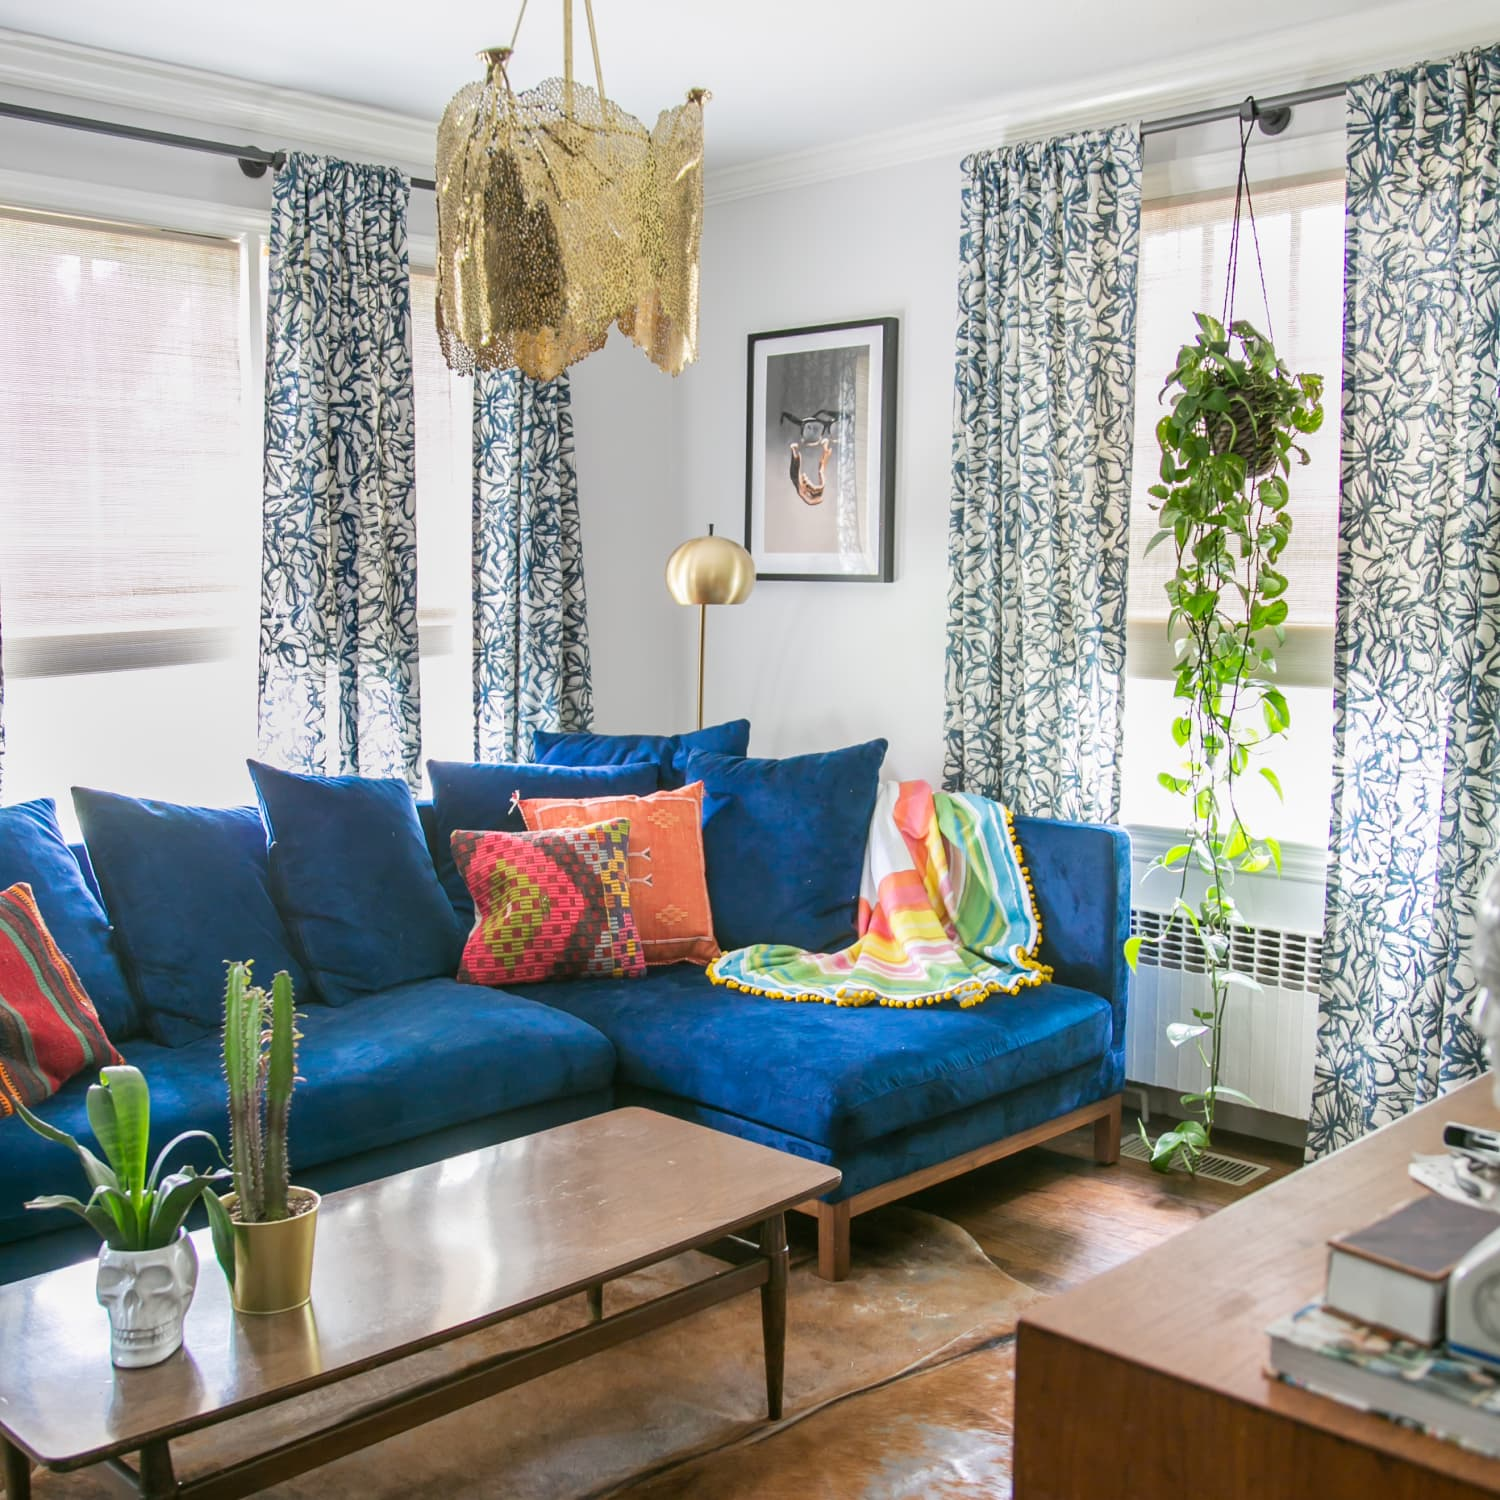 This Home's Delightful Renovation on a Modest Budget Was Made Possible Thanks to DIYs